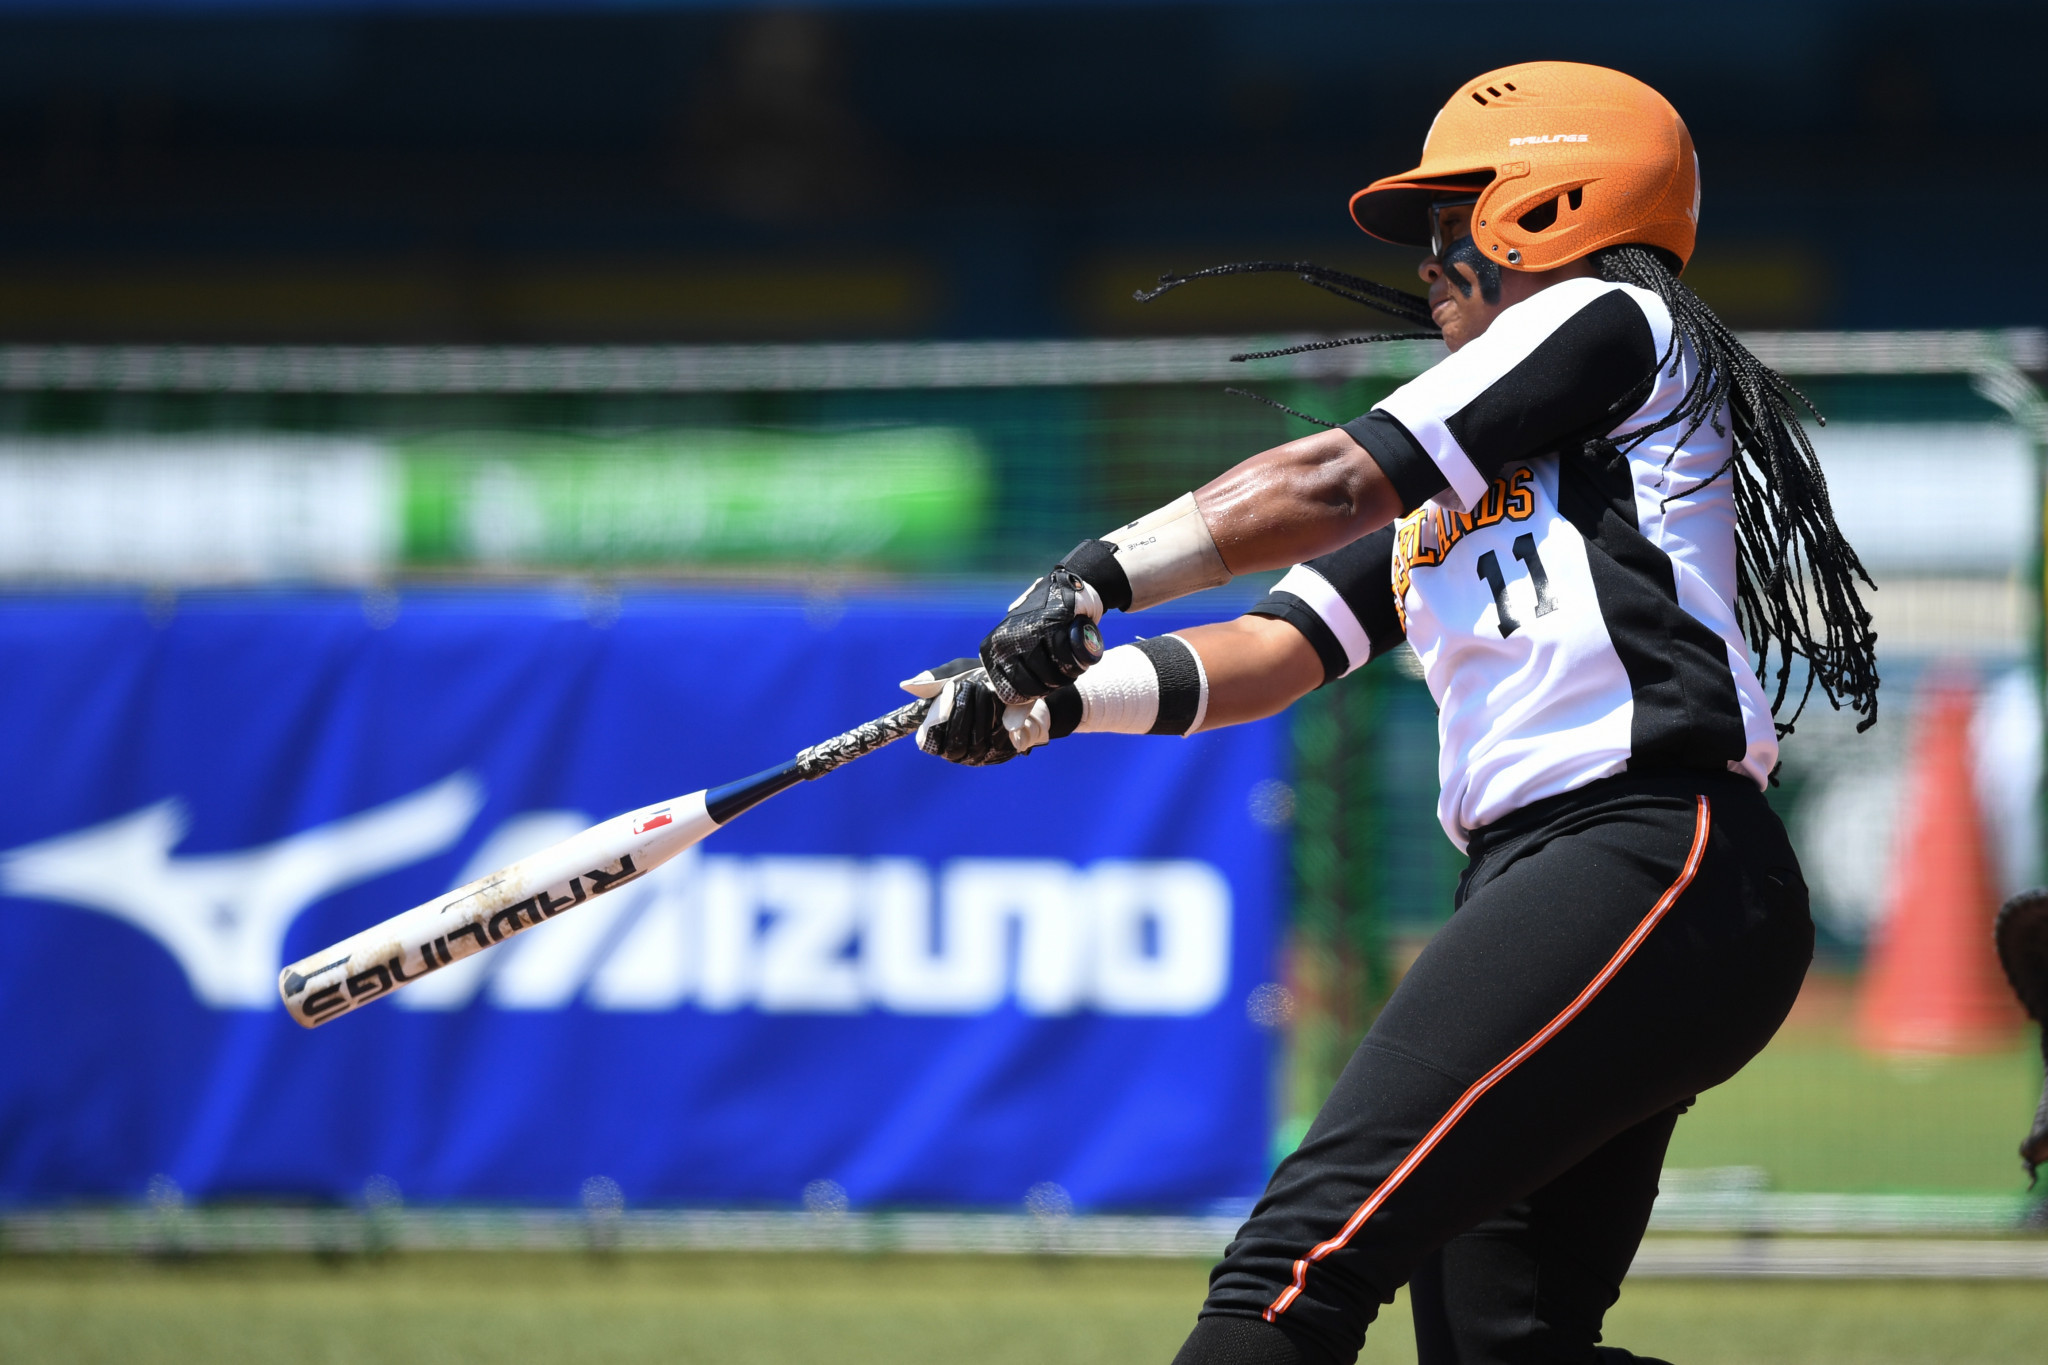 The Netherlands are the defending champions of the 2019 Softball Women's European Championship ©Getty Images